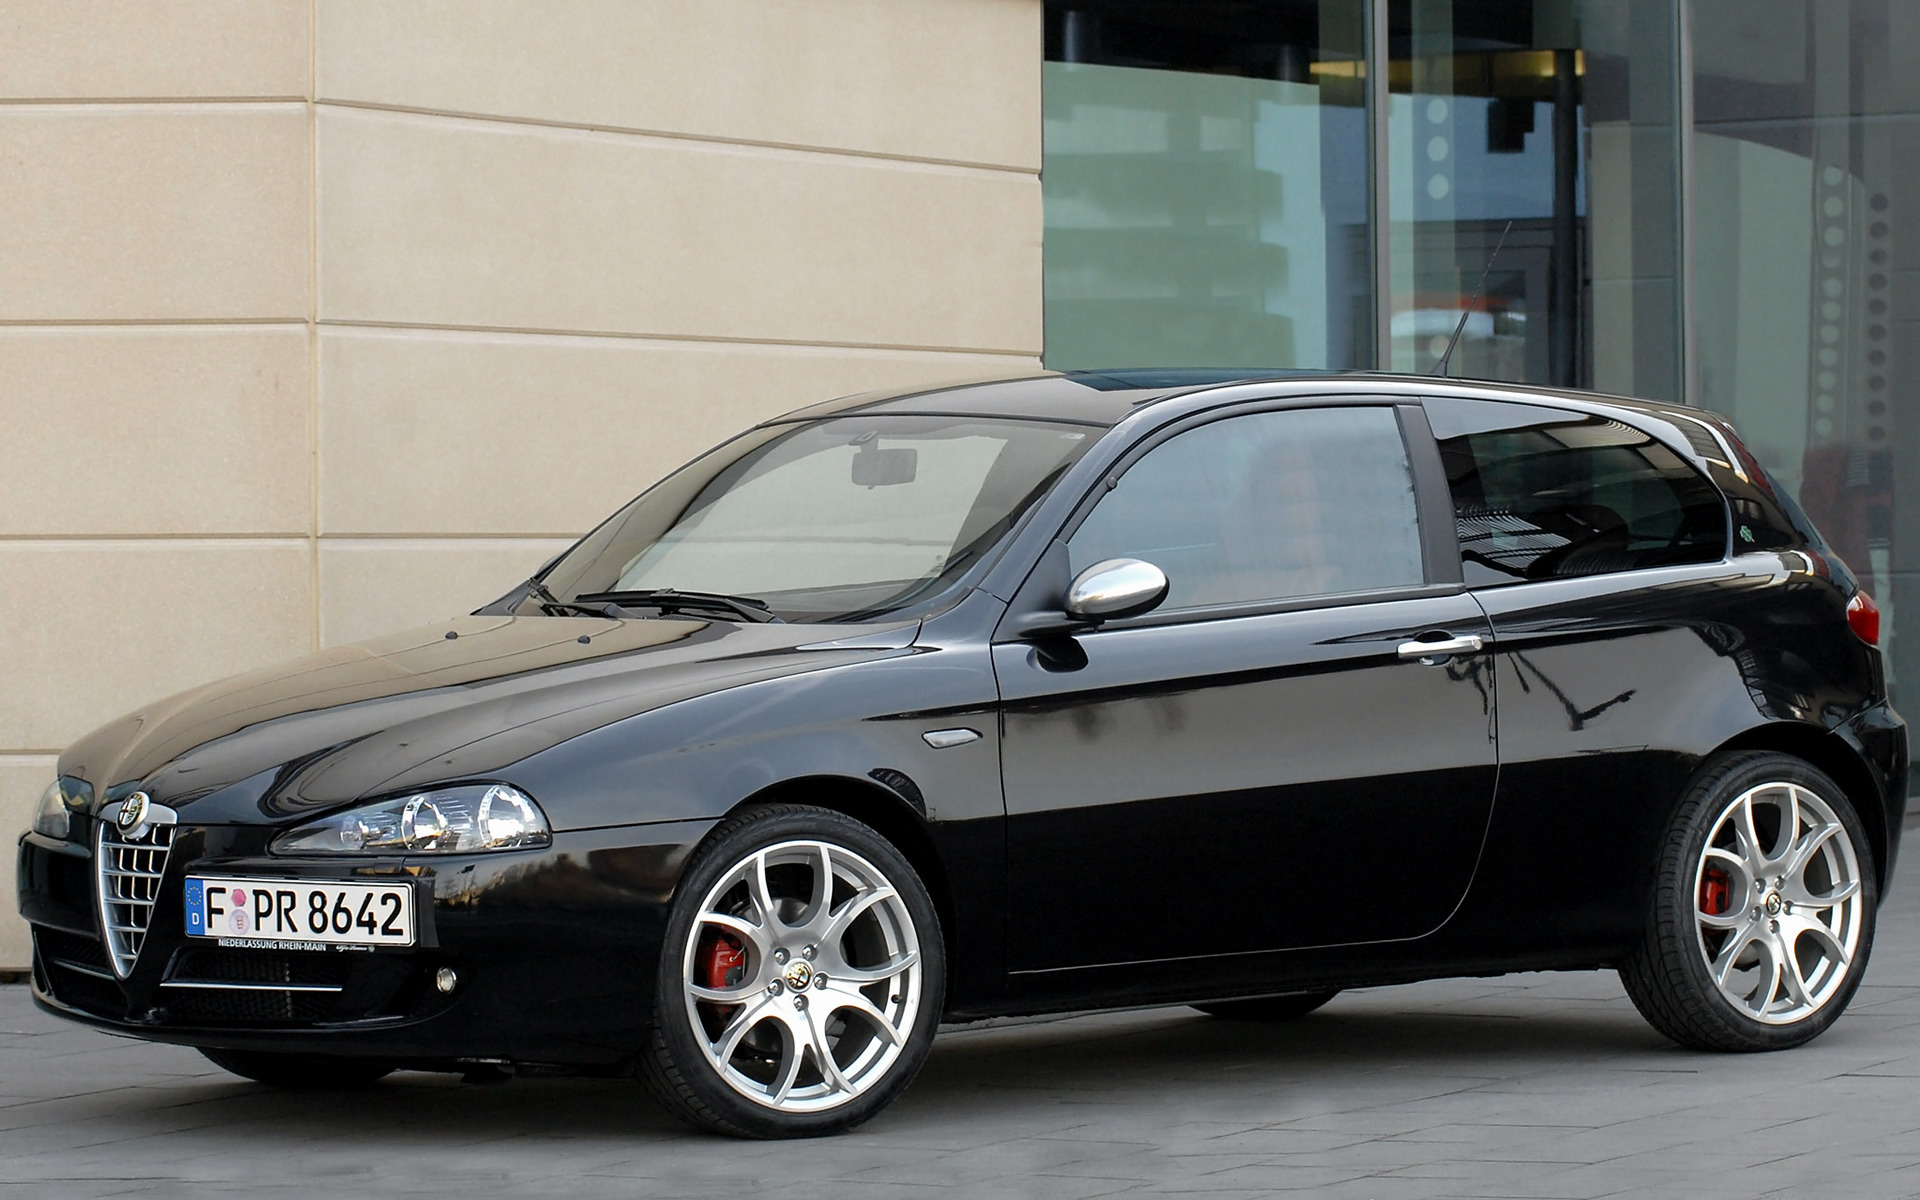 2008 Alfa Romeo 147 Quadrifoglio Verde 3 Door Wallpapers And Hd Images Car Pixel